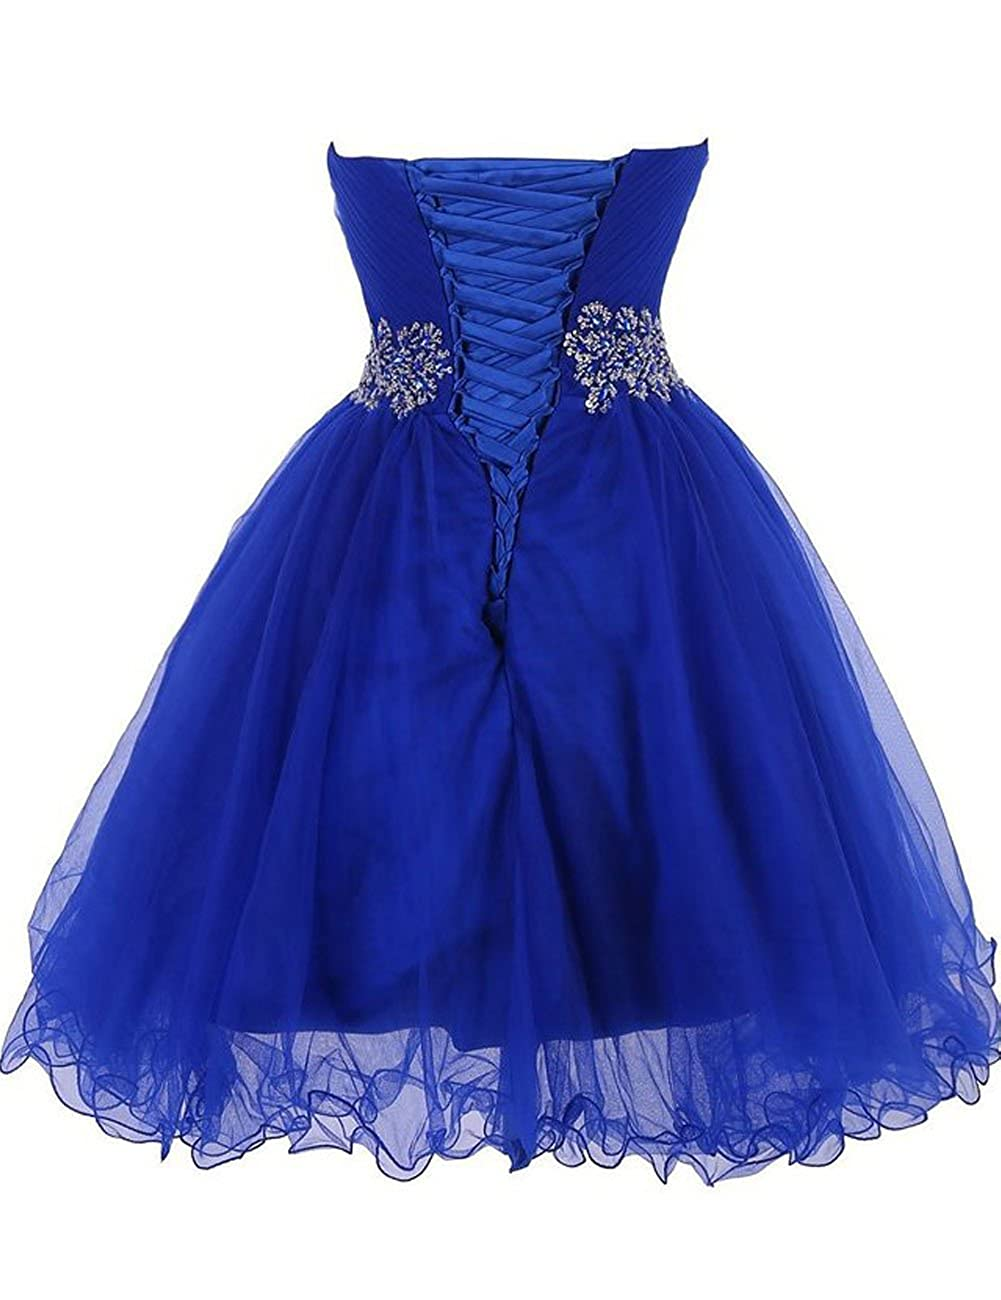 9523e93f80 Amazon.com  Short Tulle Homecoming Dresses Beaded Prom Cocktail Gowns  Sweetheart Junior Party Dress  Clothing